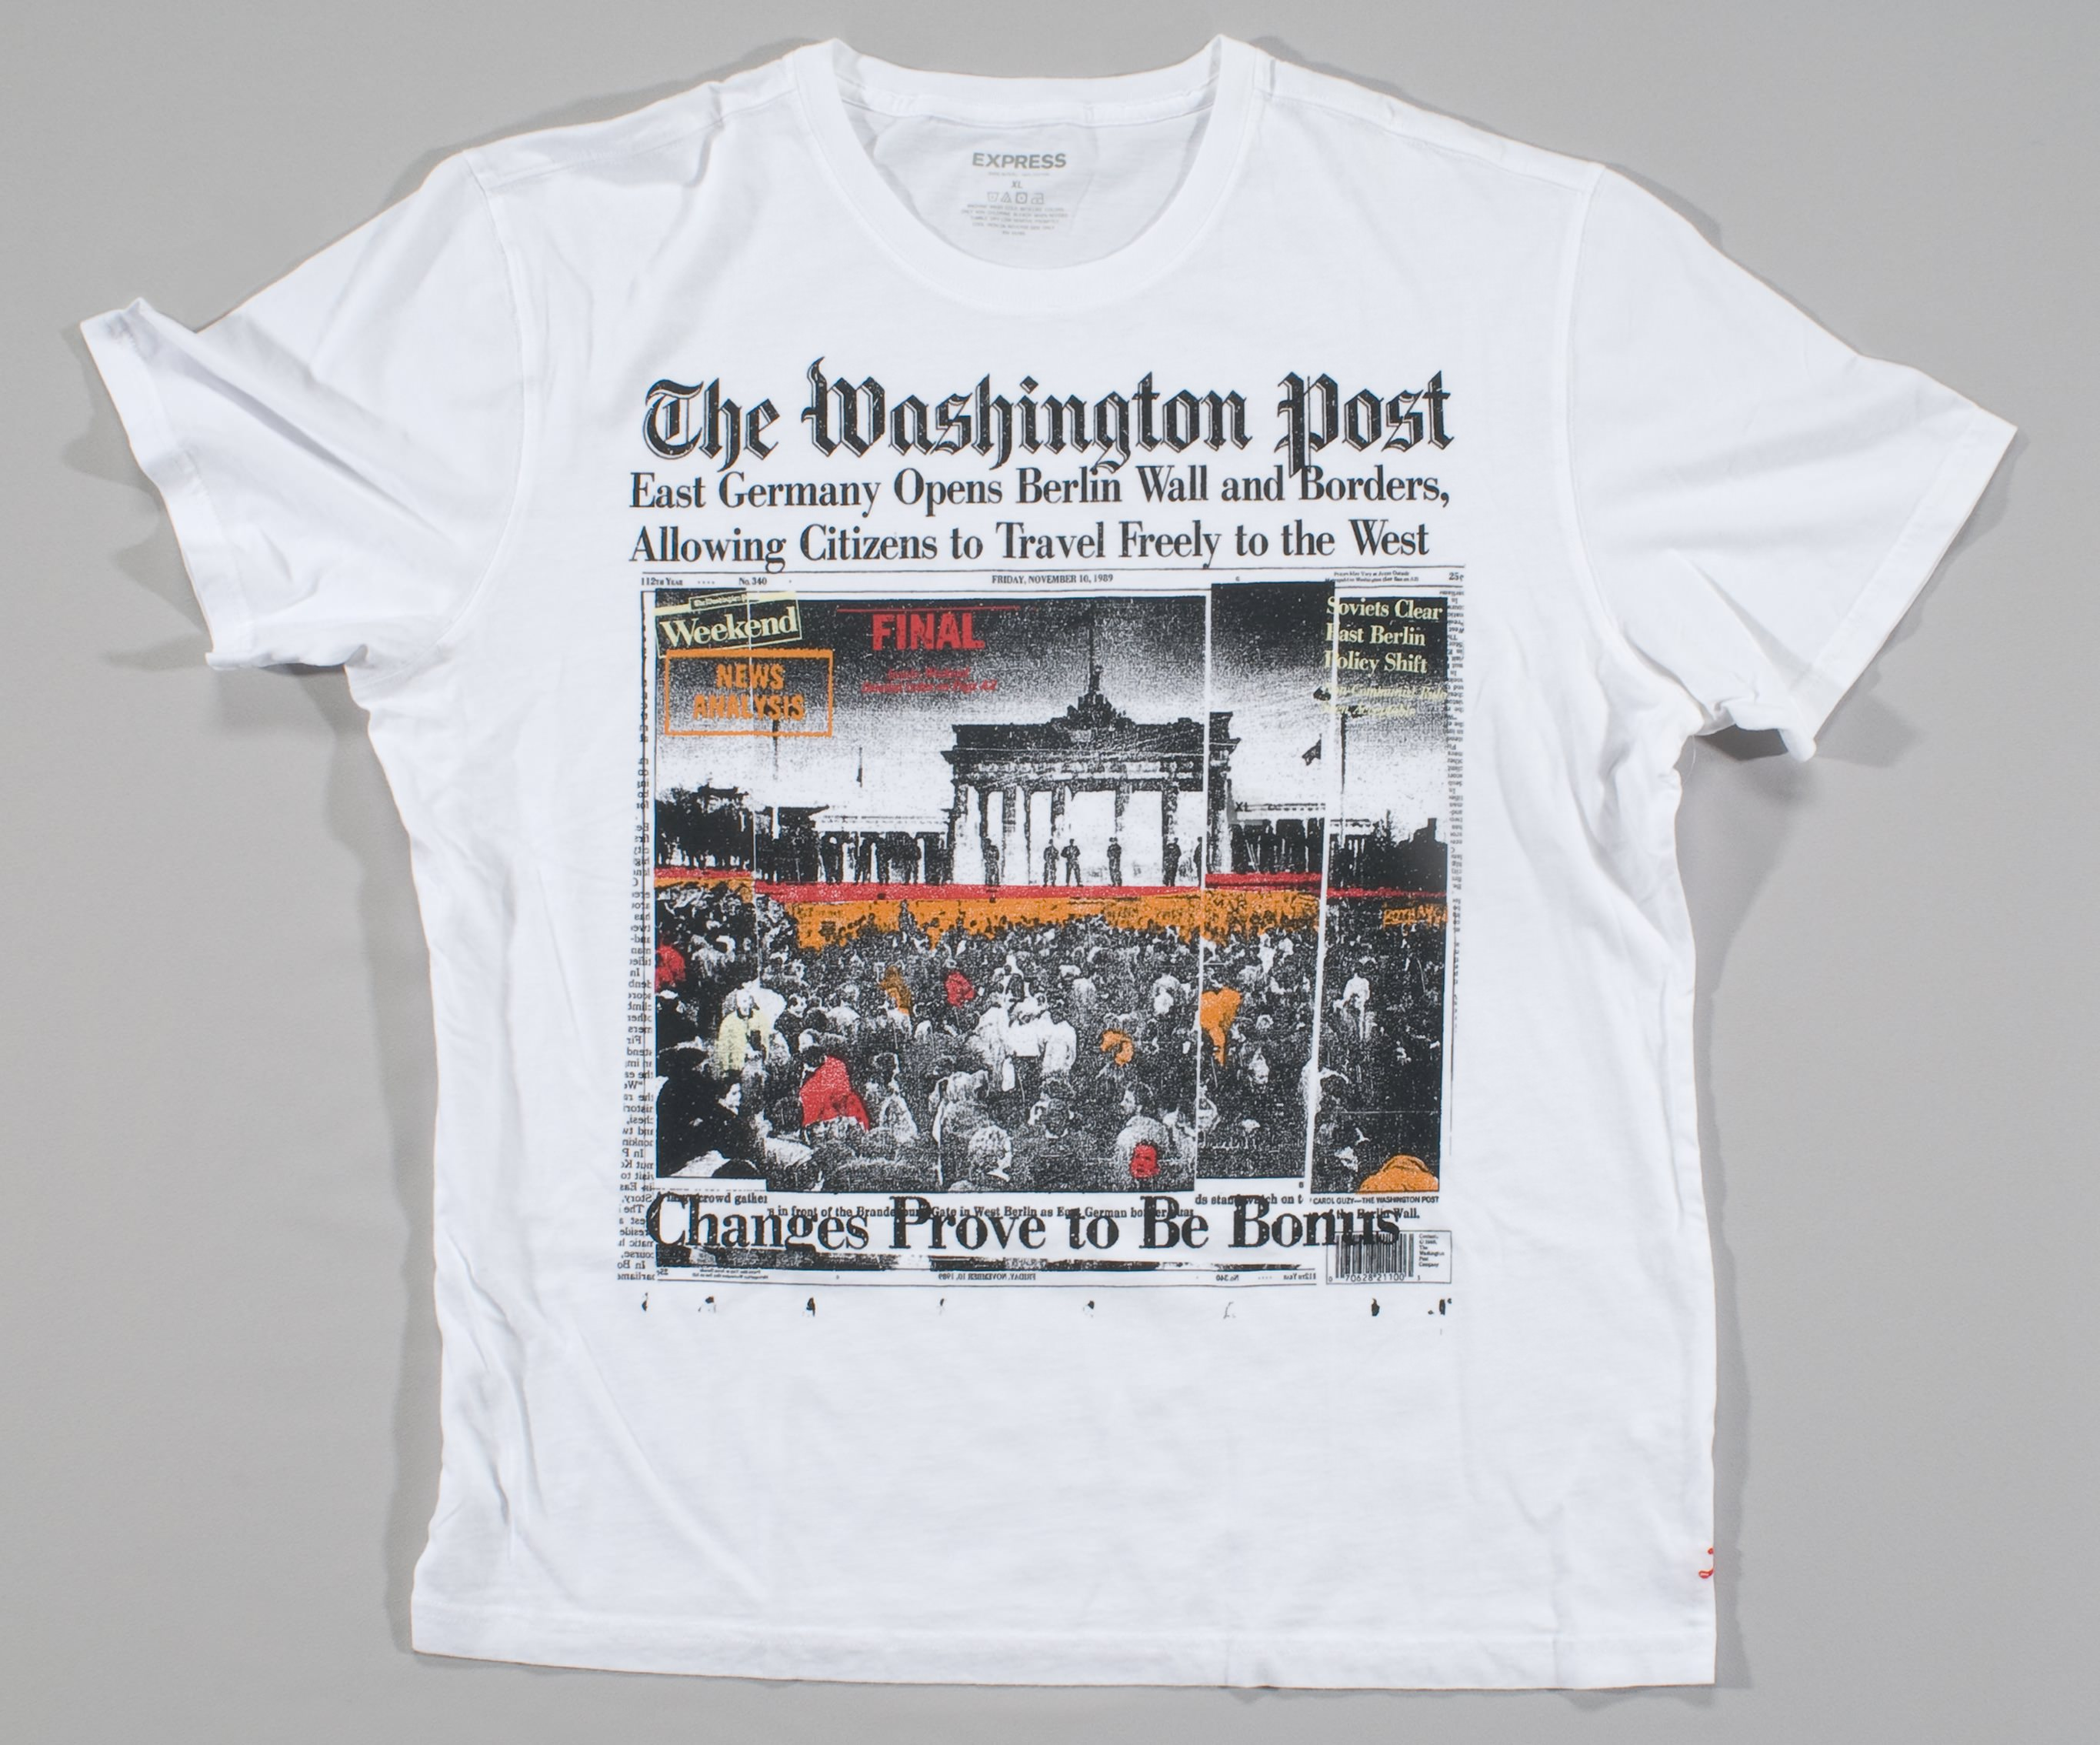 T-shirt with screened image of artistic rendering of the front page of the Washington Post, November 10, 1989.